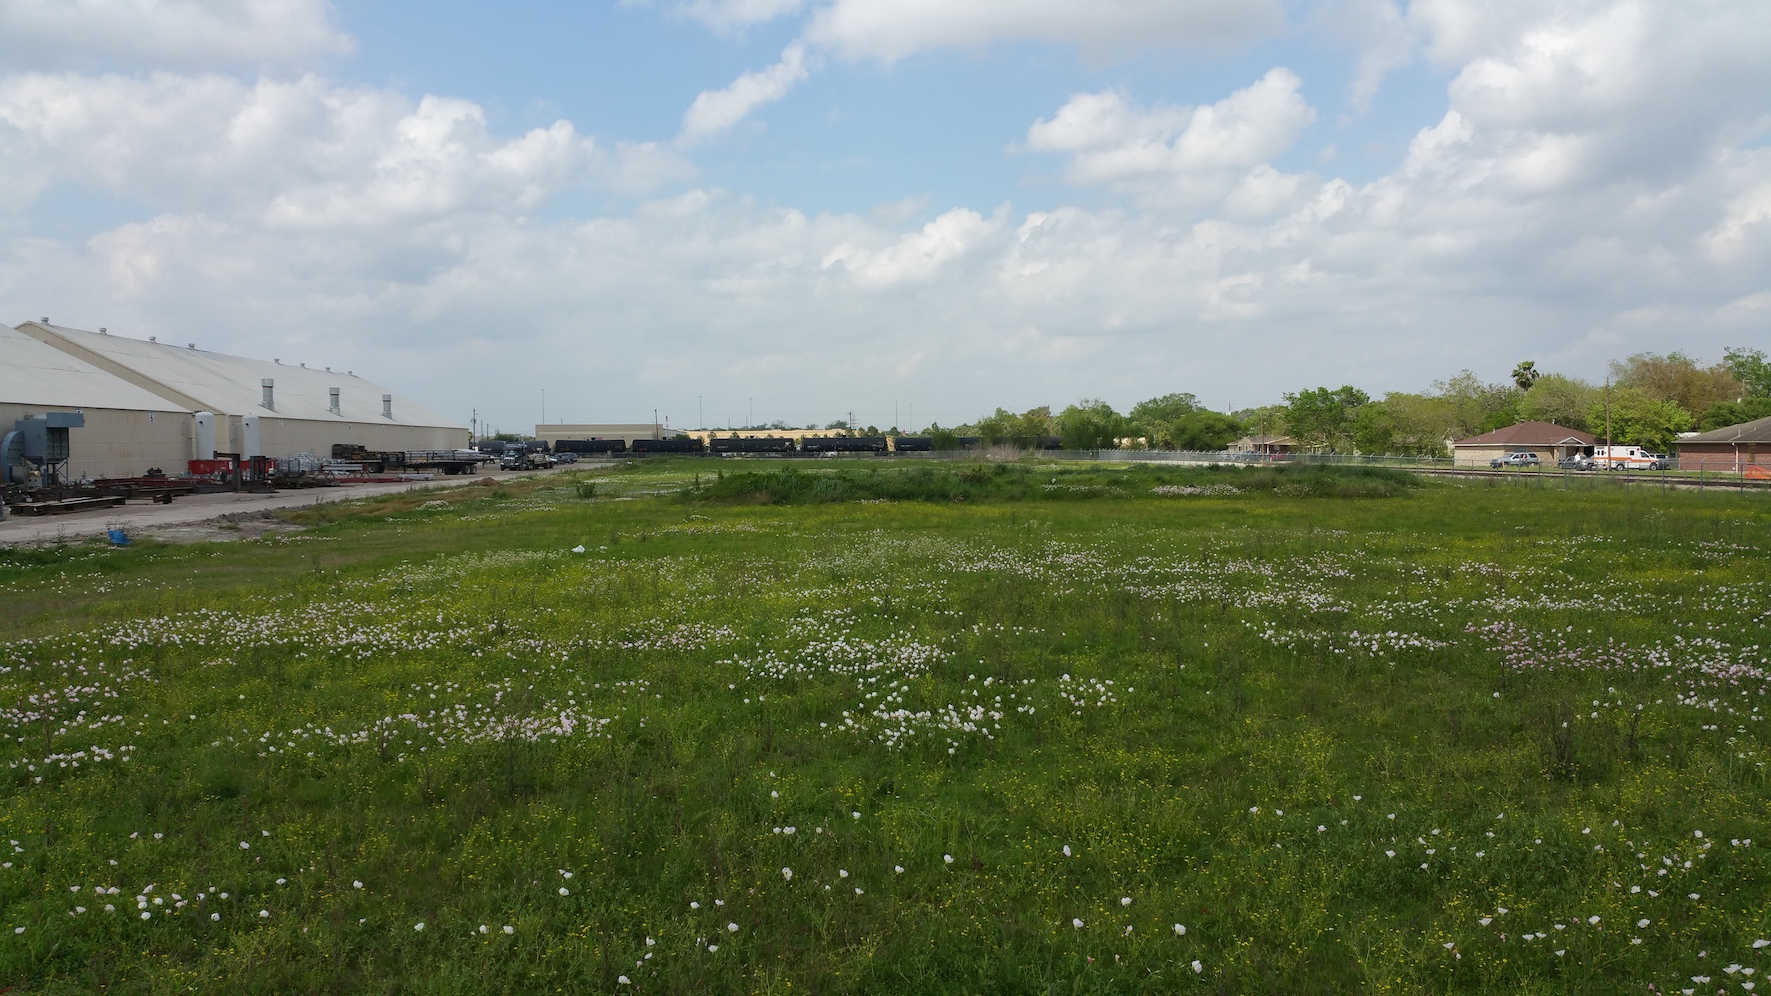 4800 Fidelity - 6 acres for build to suit warehouse or storage yard for lease